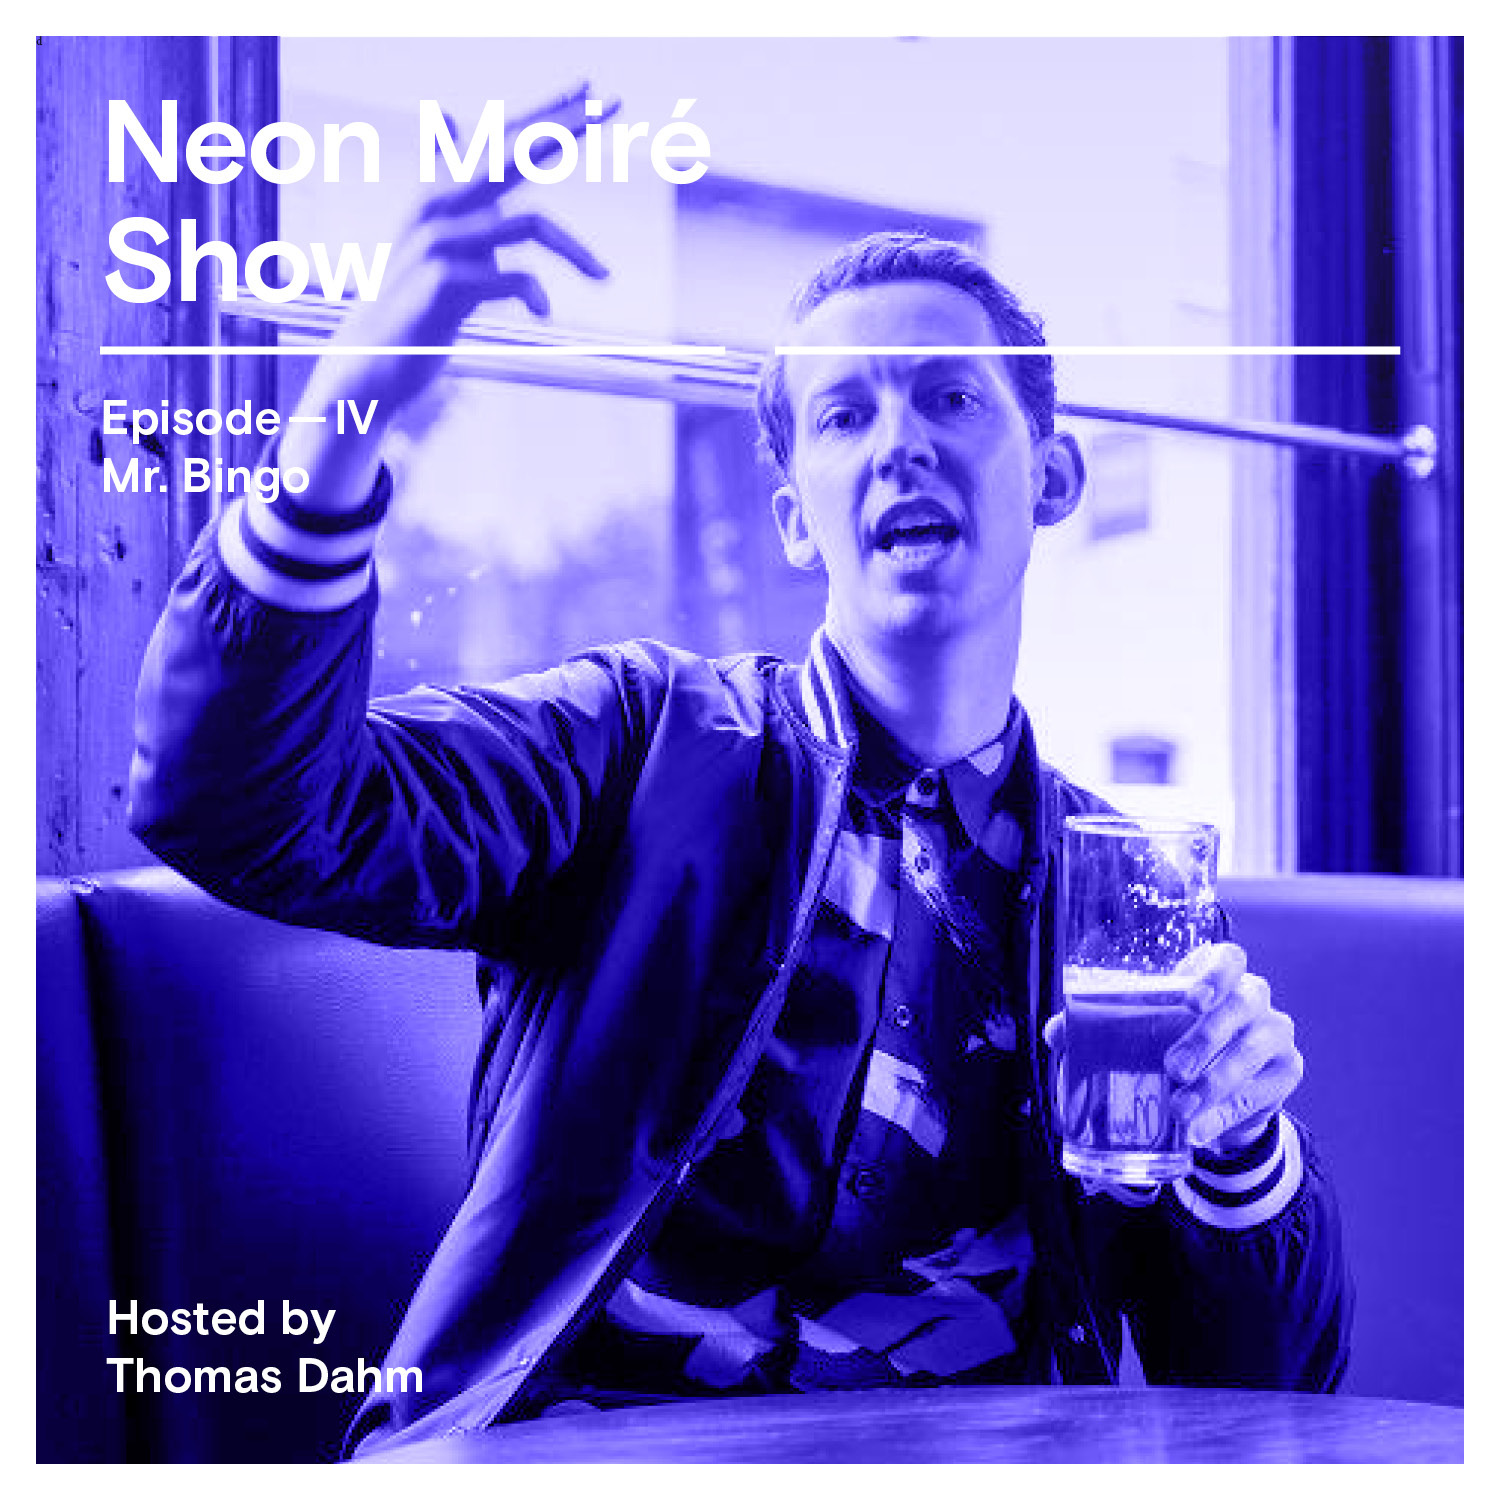 Neon Moire Show with Mr. Bingo